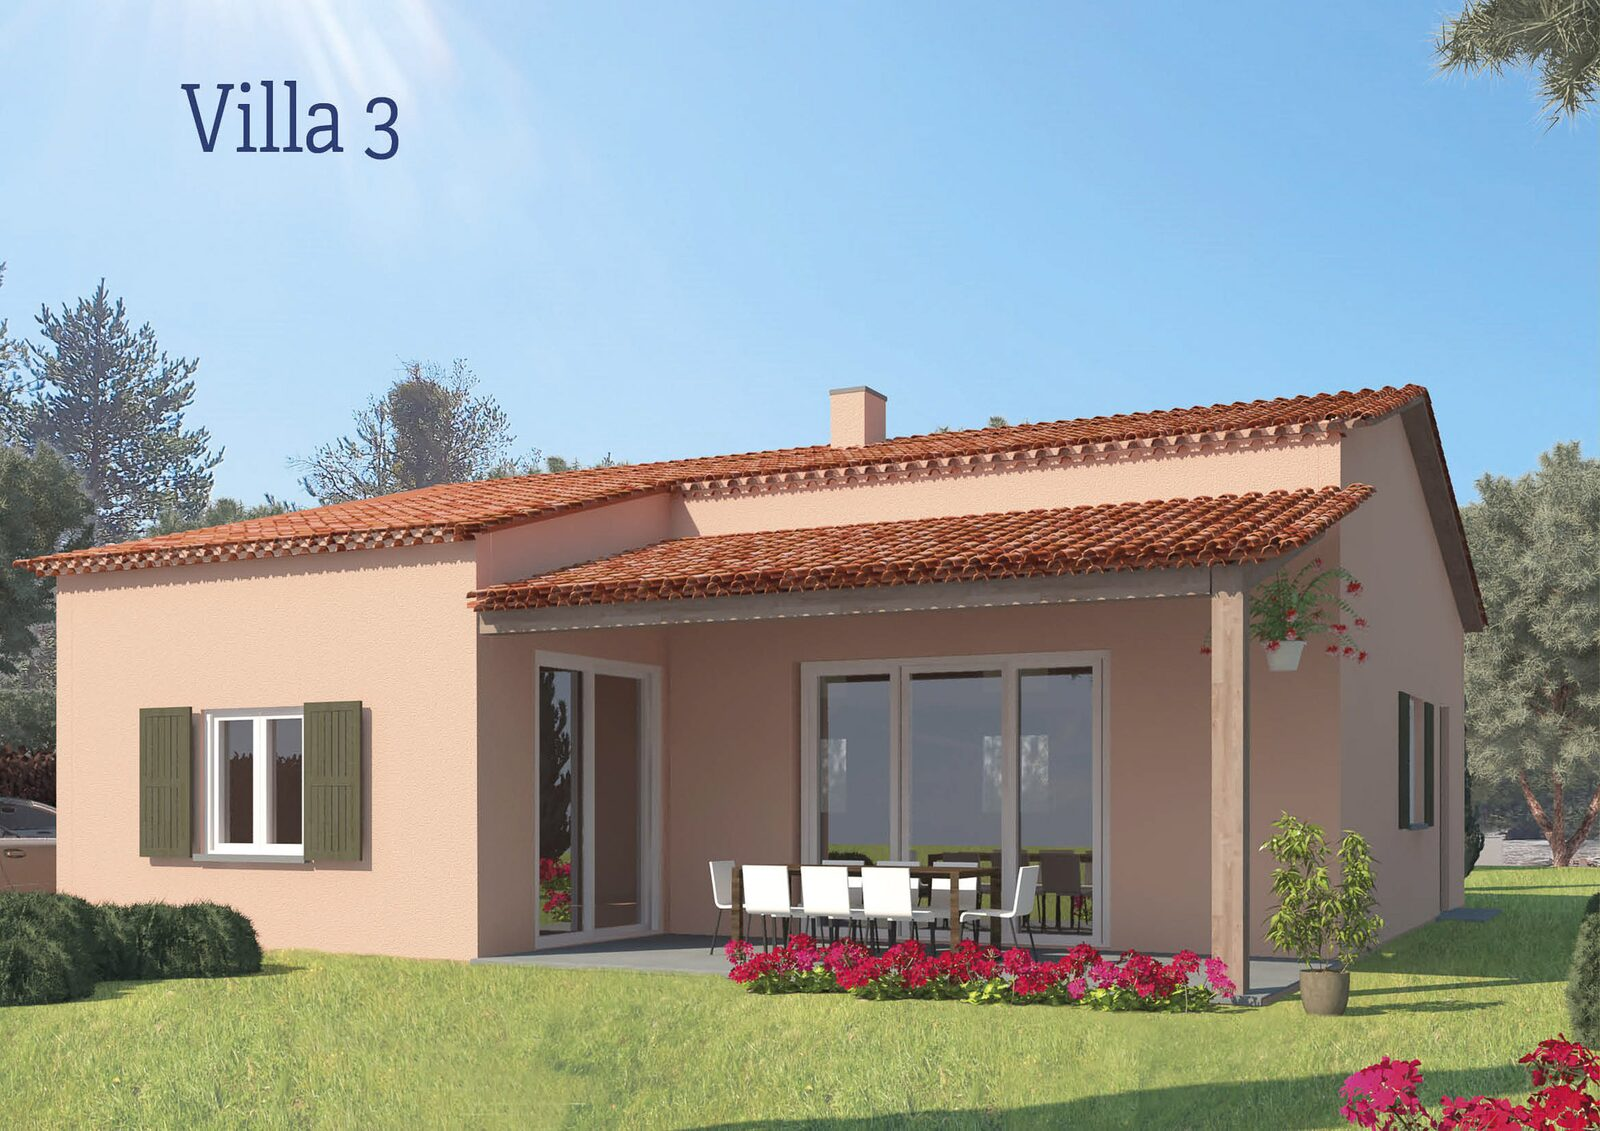 Four-room villa for six persons - type 3